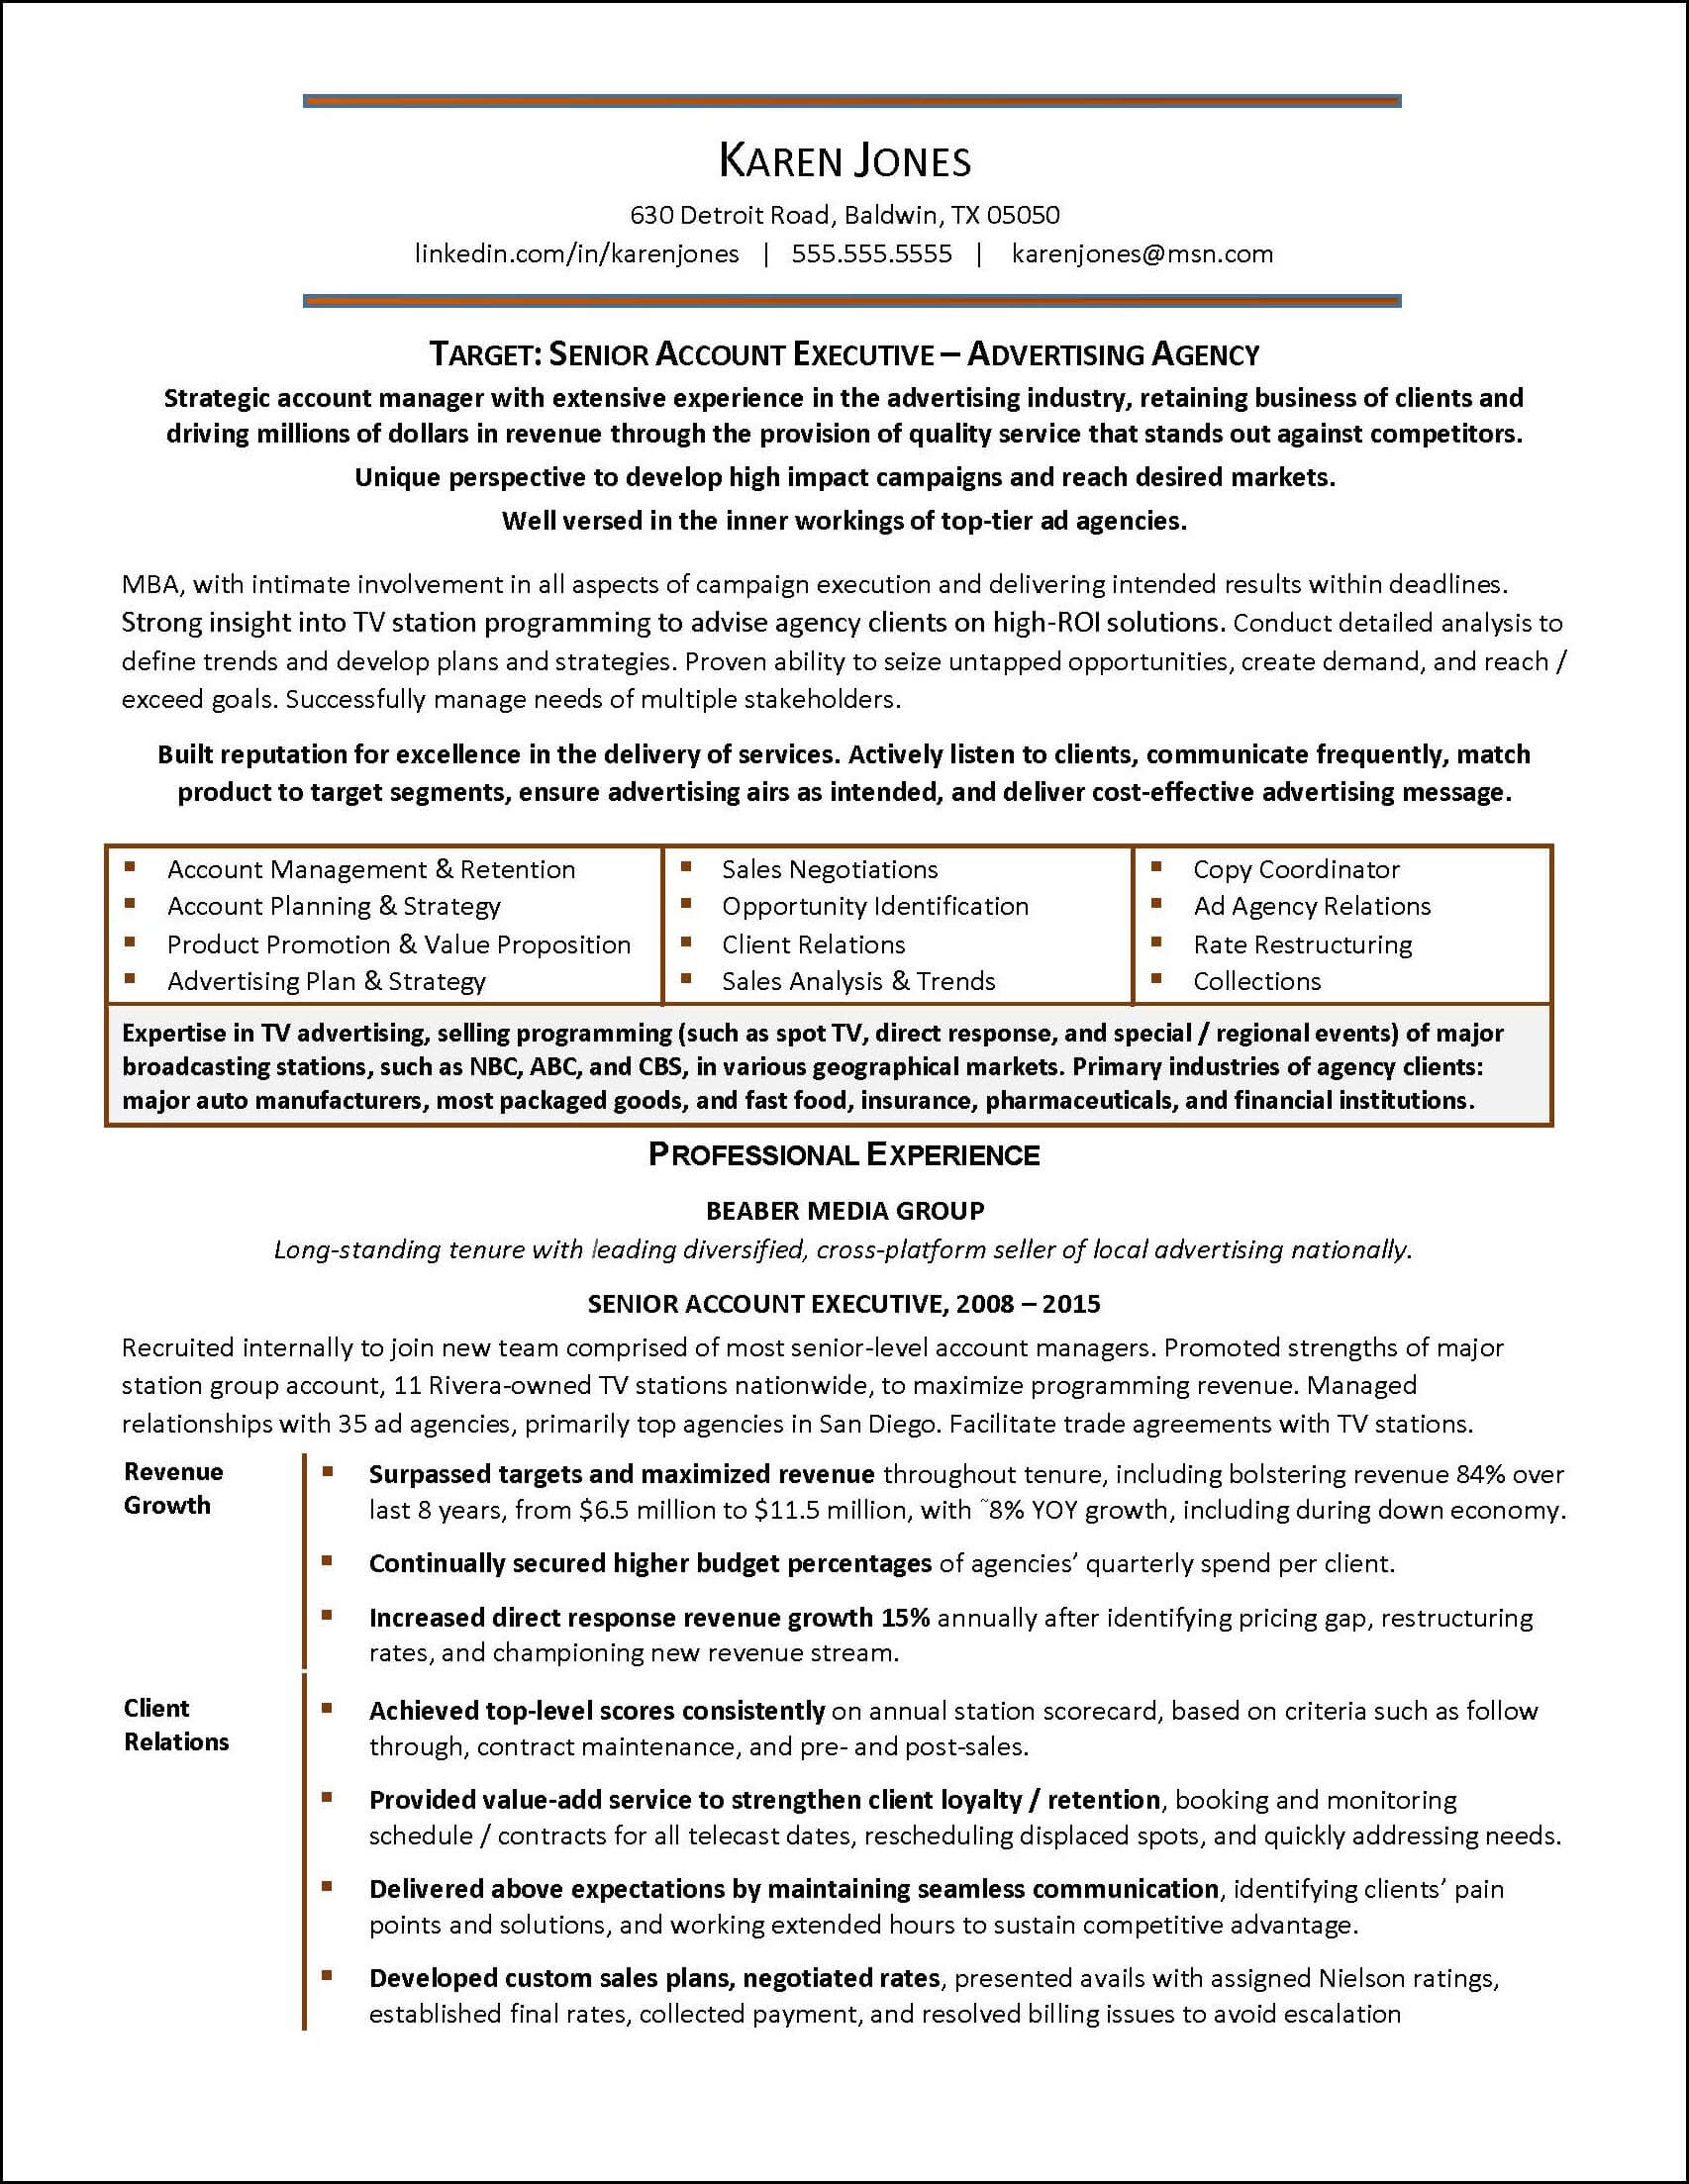 Nice Example Resume For An Account Executive In An Advertising Agency Within Advertising Resume